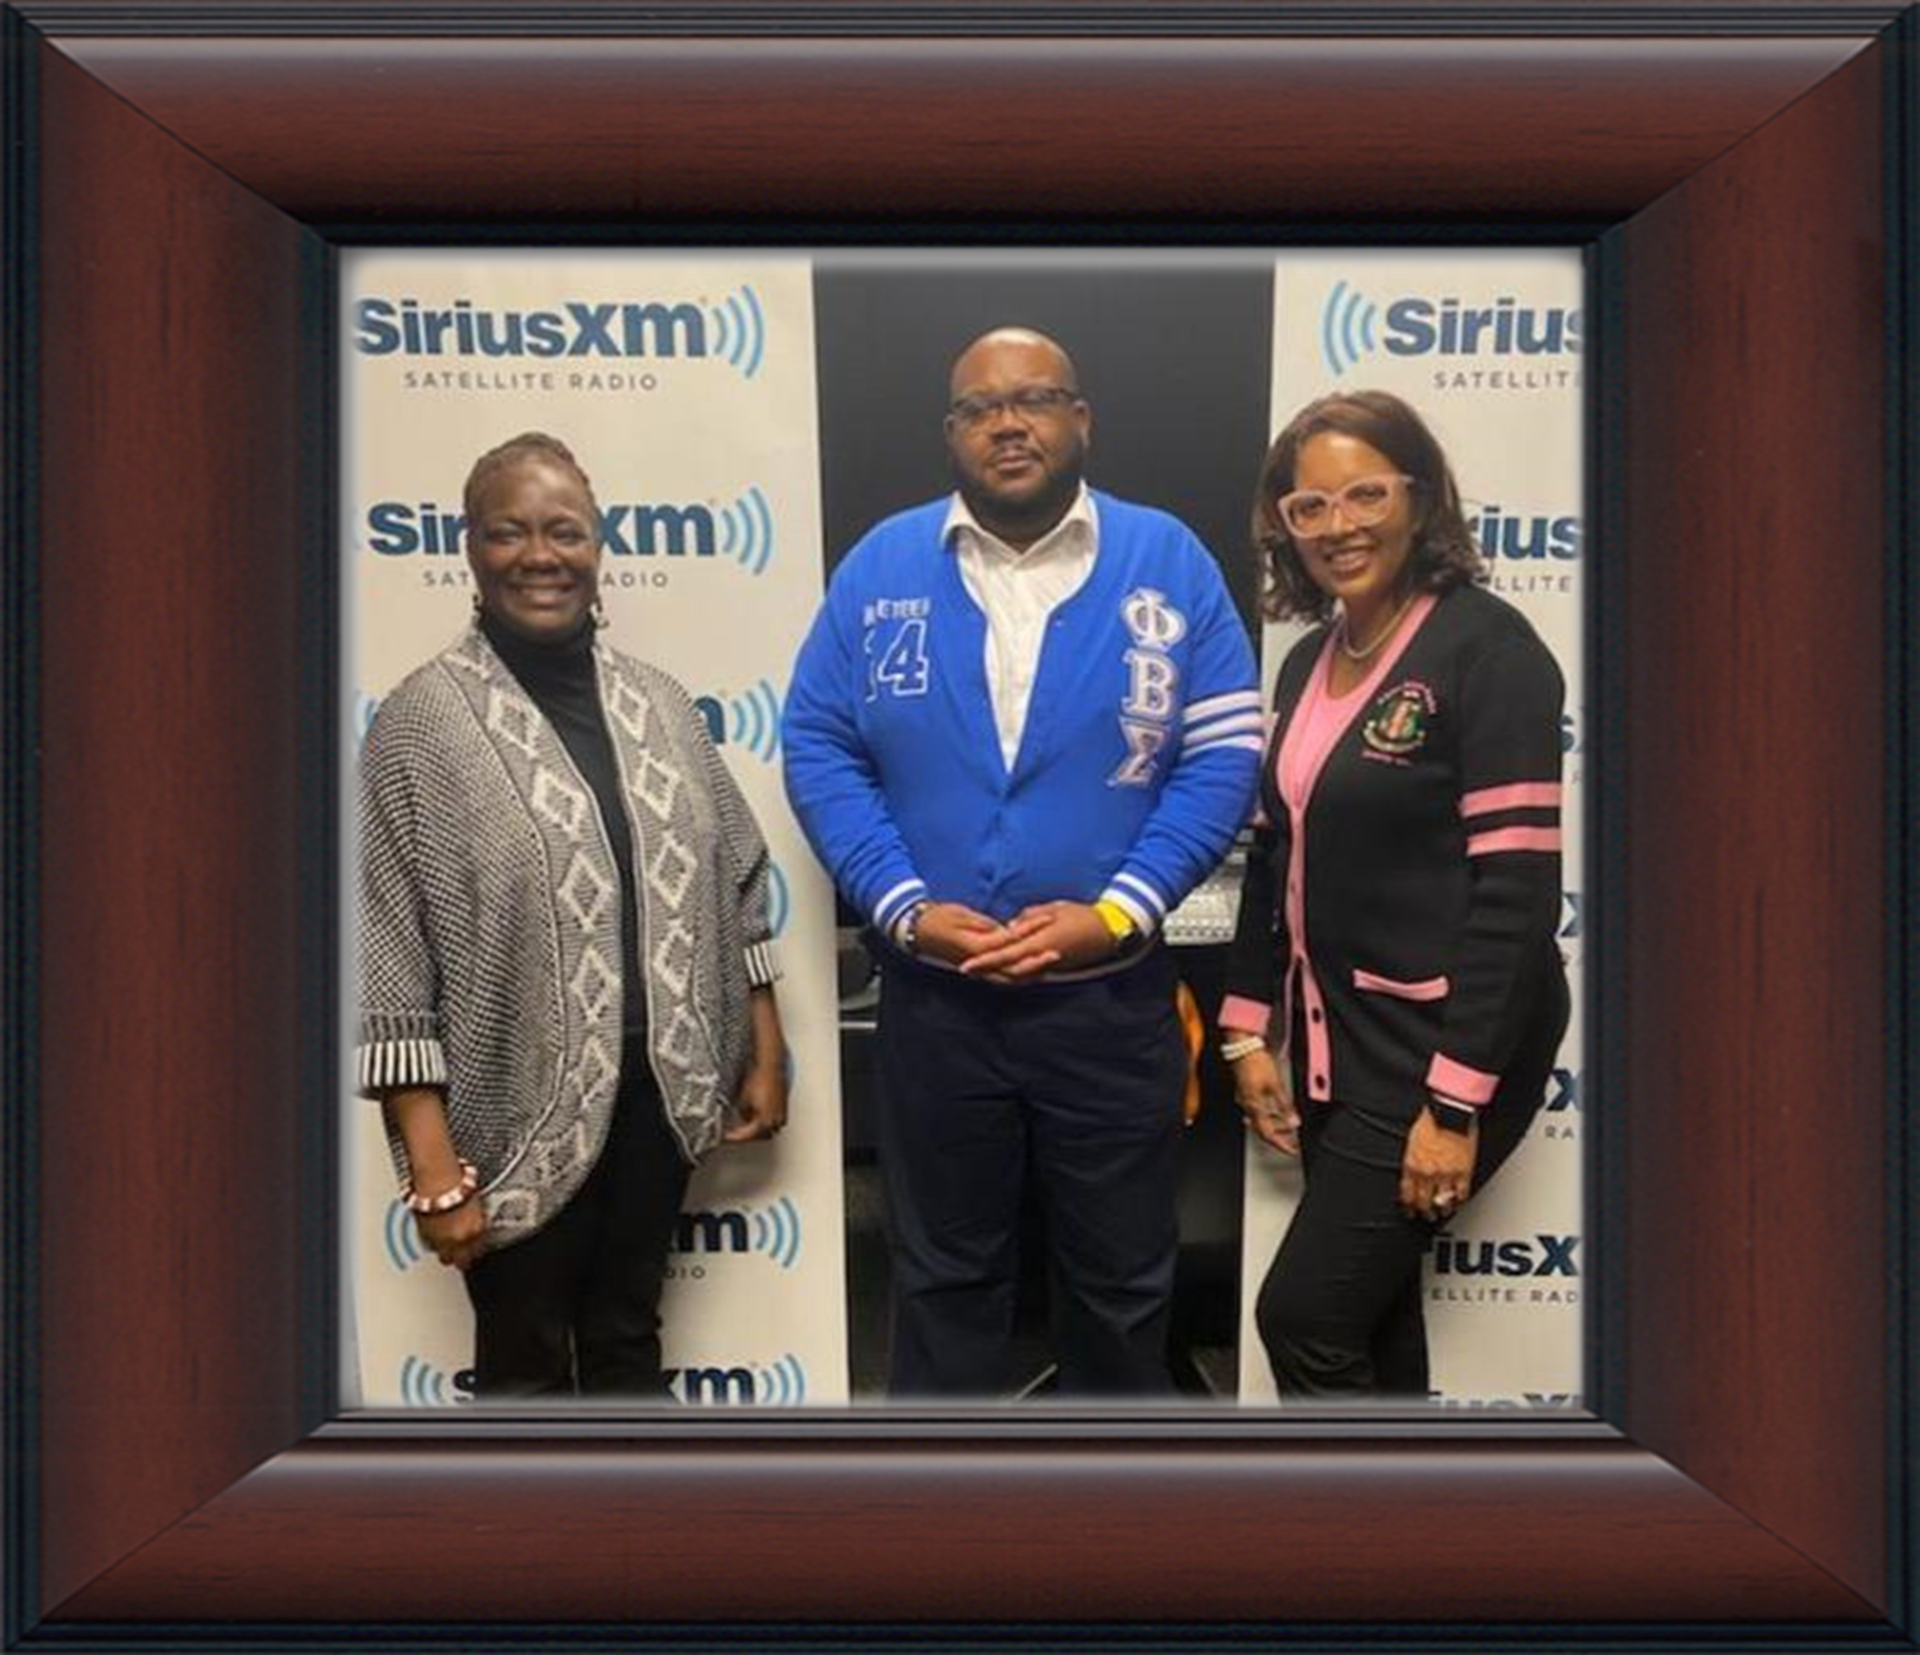 Dean Allyson Watson, Superintendent Micheal Johnson, and Dr. Vanessa Pitts Bannister  interviewed on The HBCU Channel on Sirius XM Channel 142